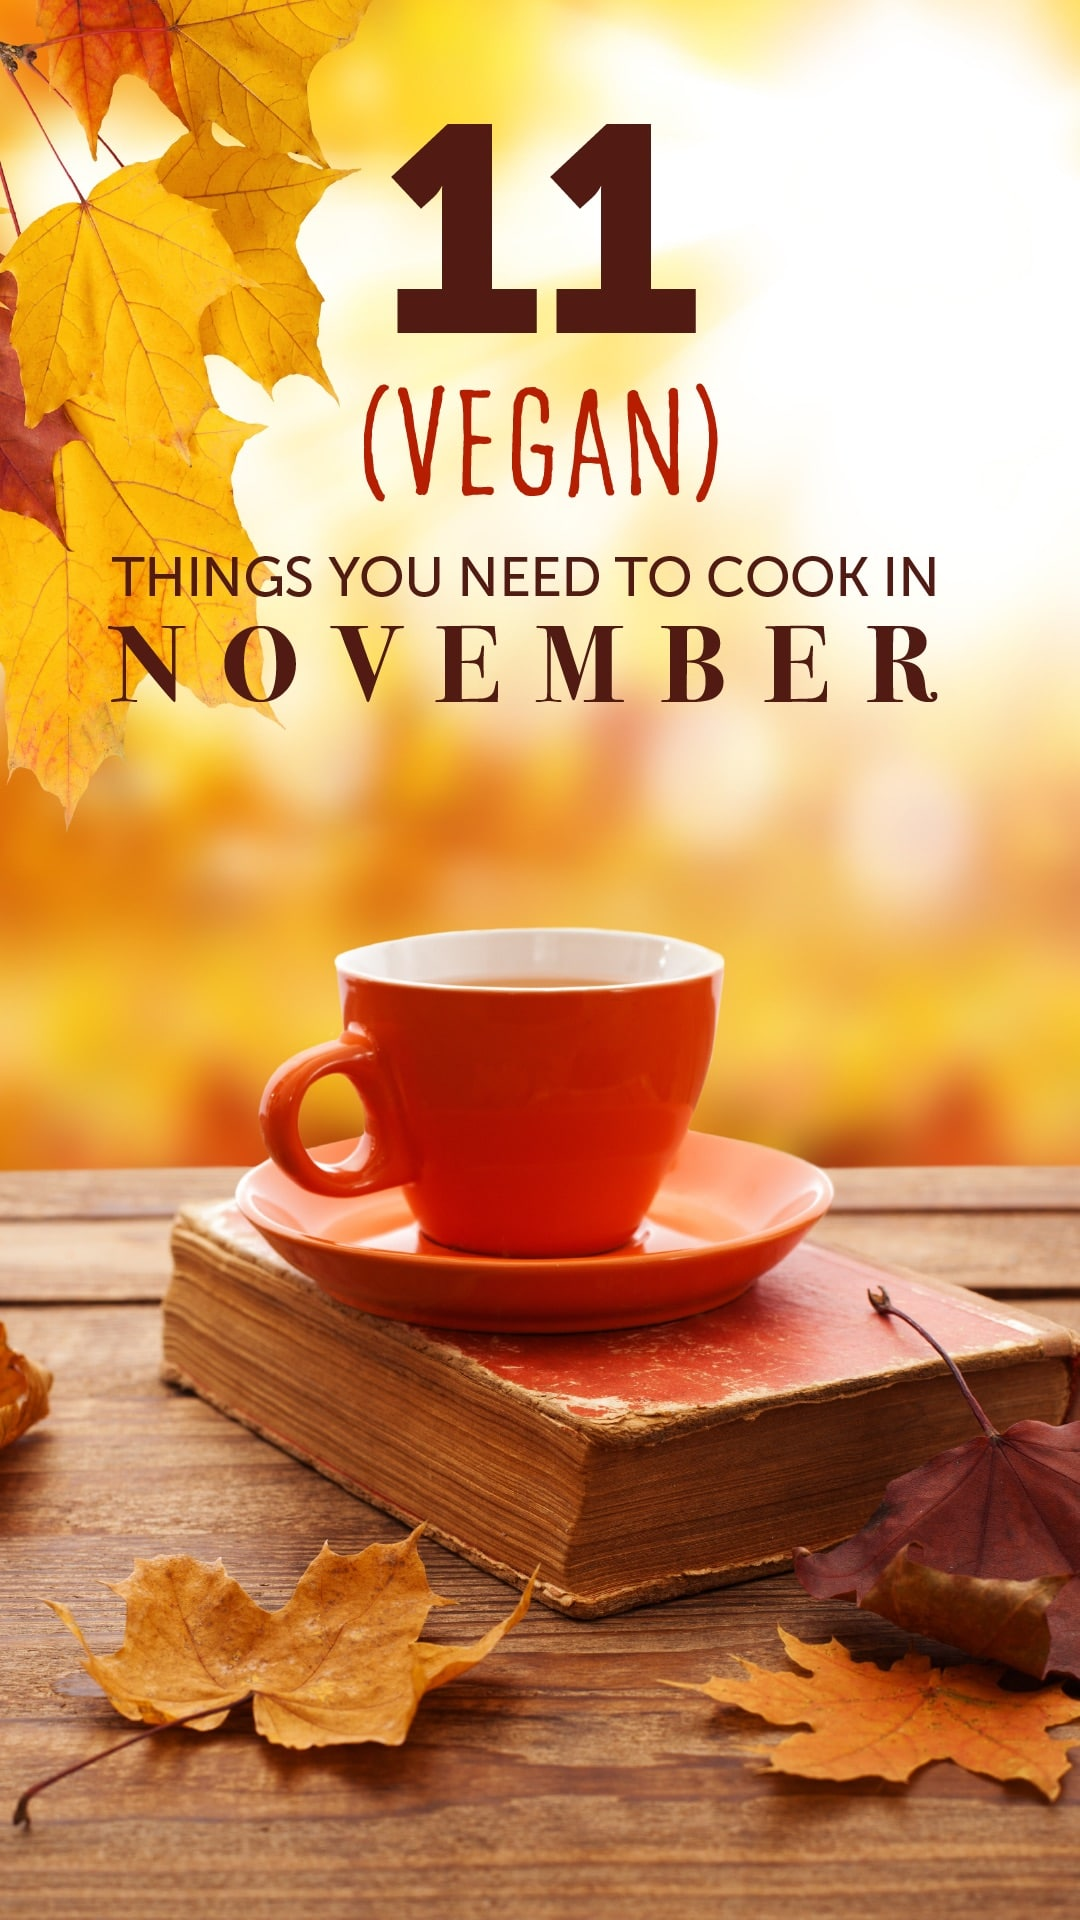 11 (Vegan) Things You Need to Cook in November